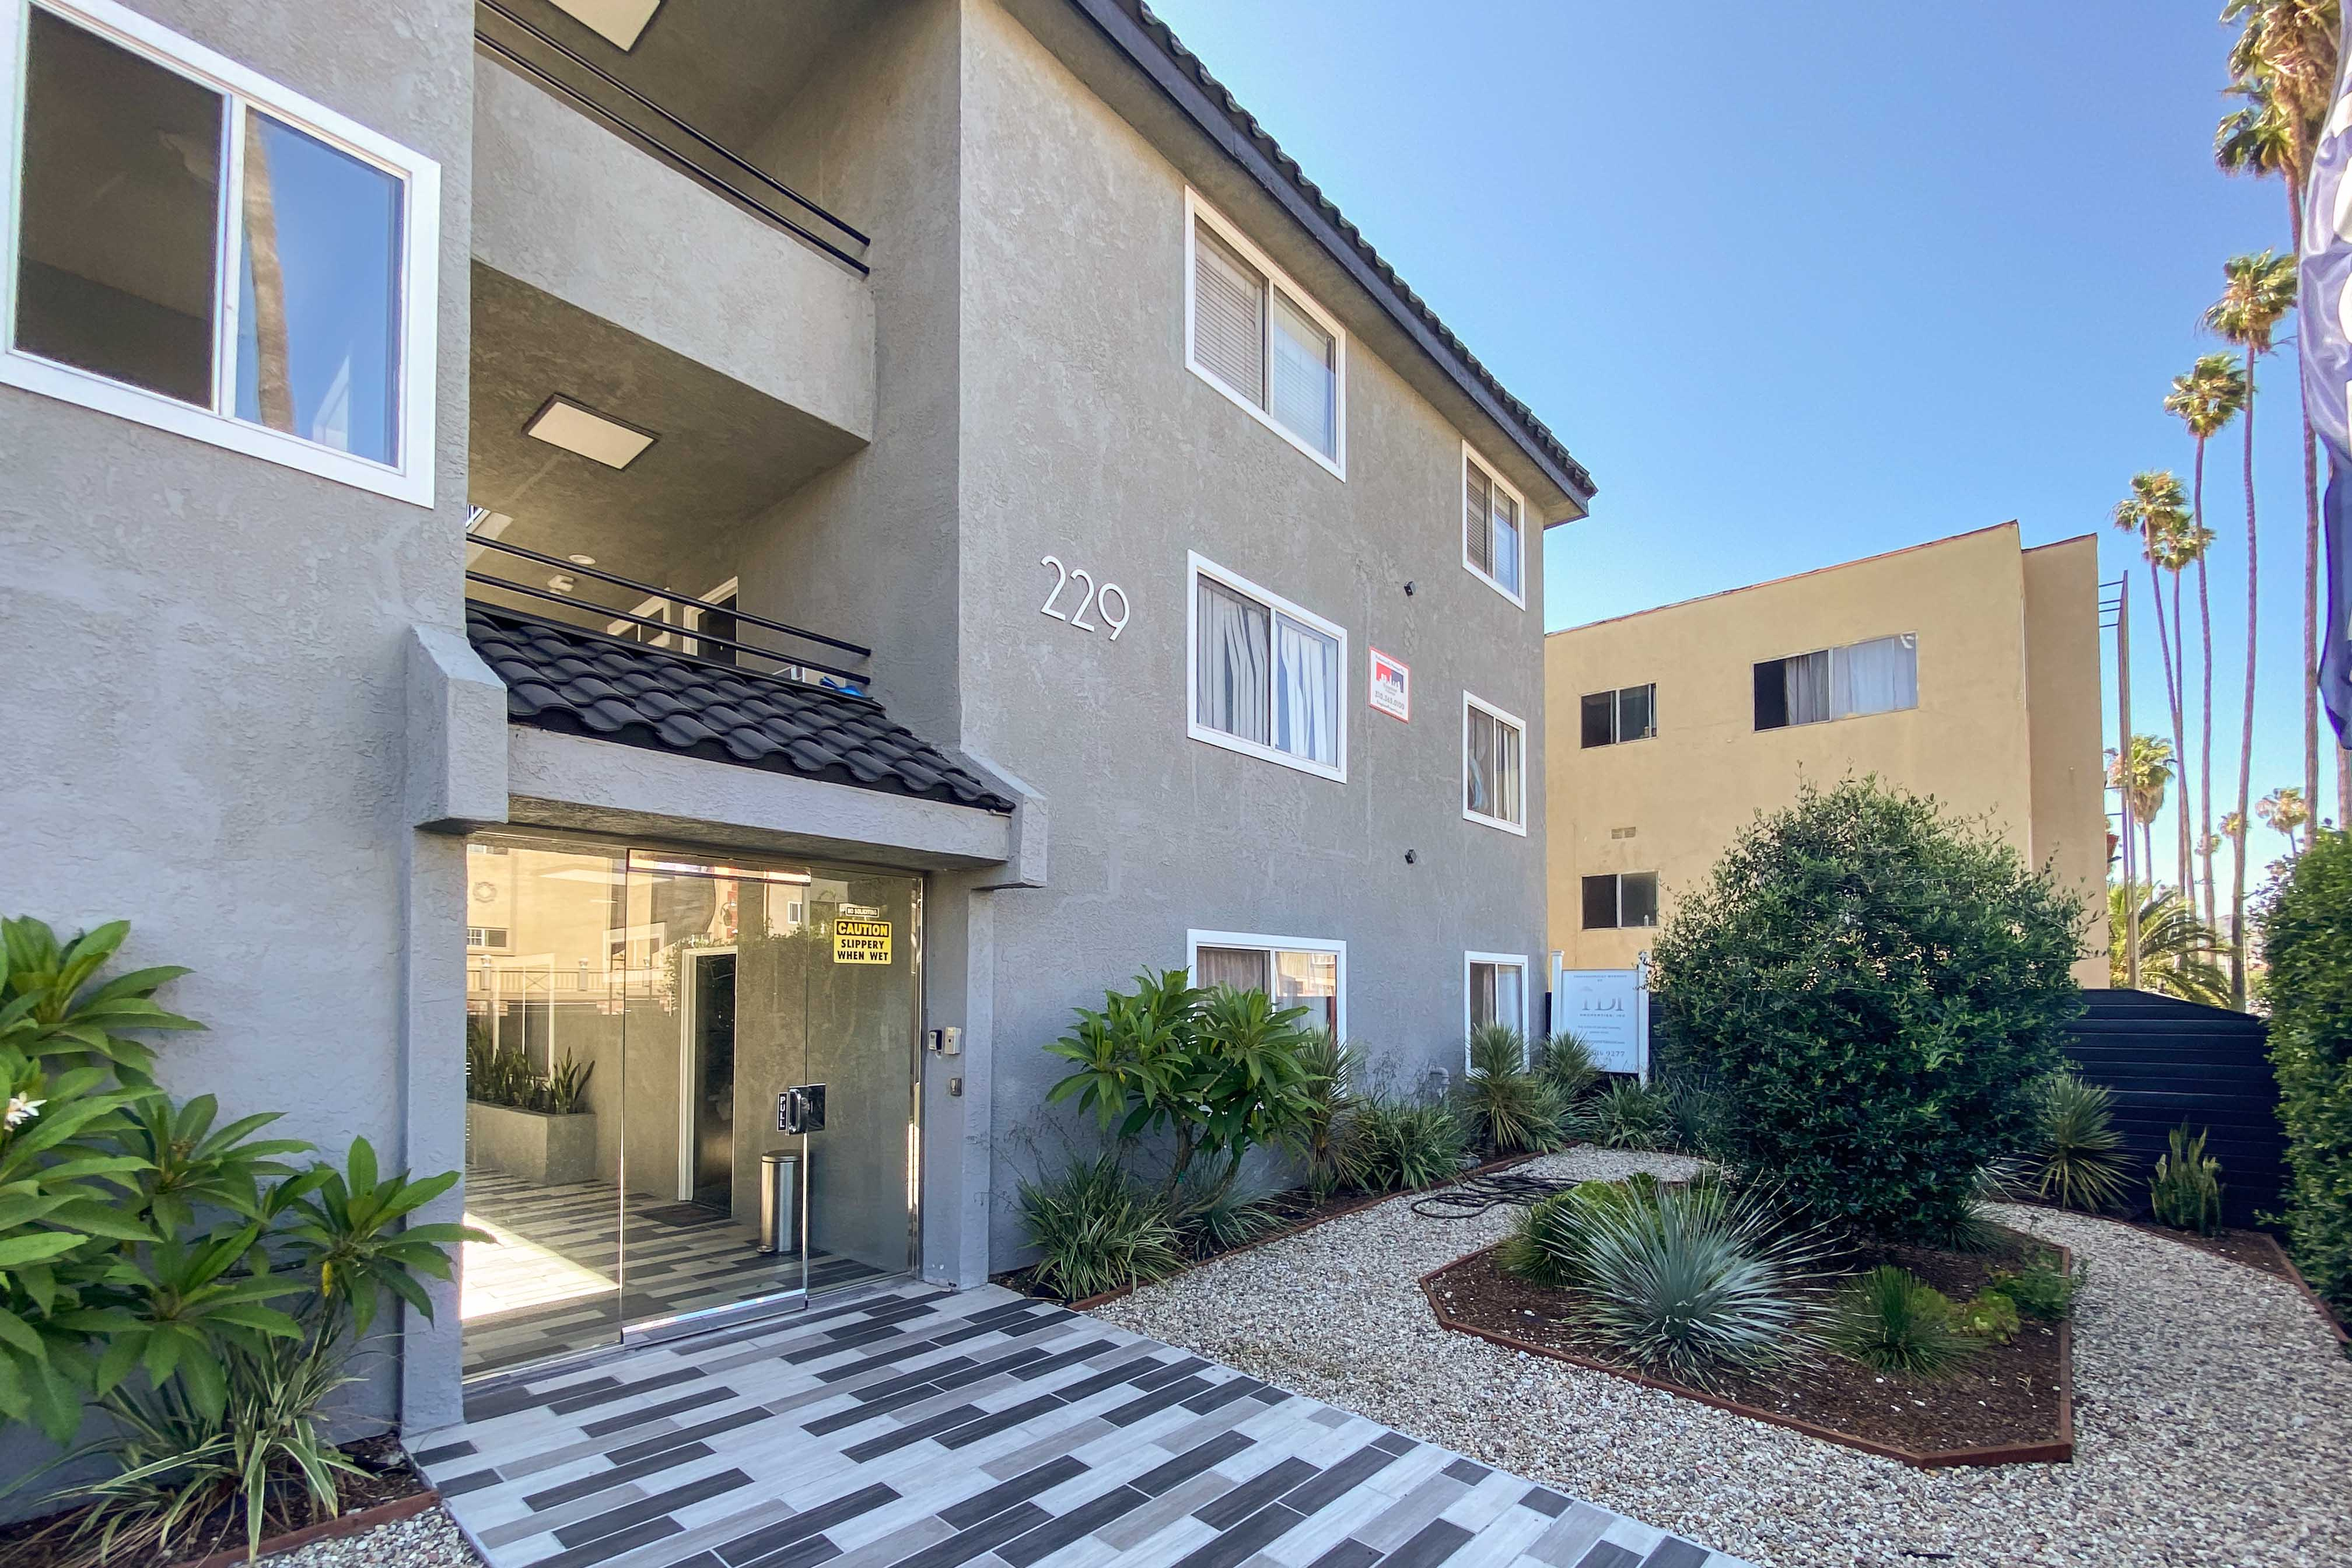 Spacious 2BR/1BA Unit in Awesome Koreatown Location. One Parking Space and Laundry on Every Floor